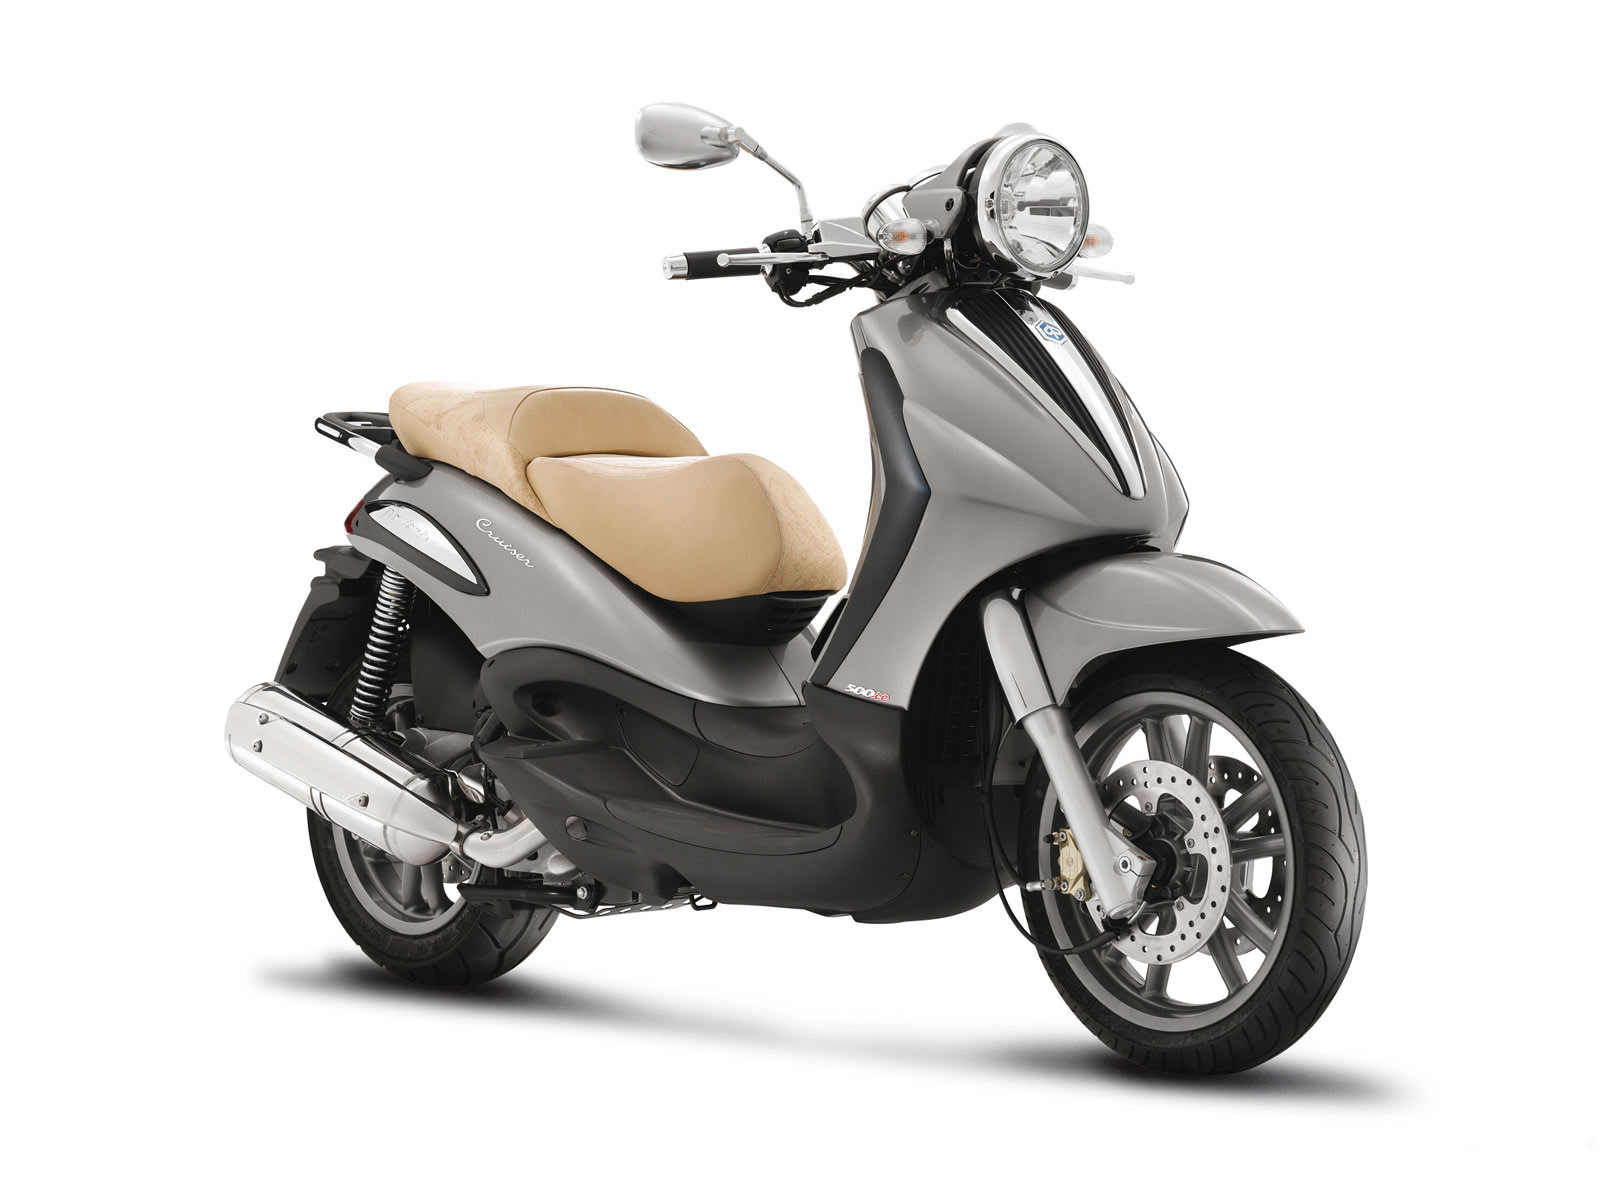 2008 beverly cruiser 500 scooter pictures specifications. Black Bedroom Furniture Sets. Home Design Ideas